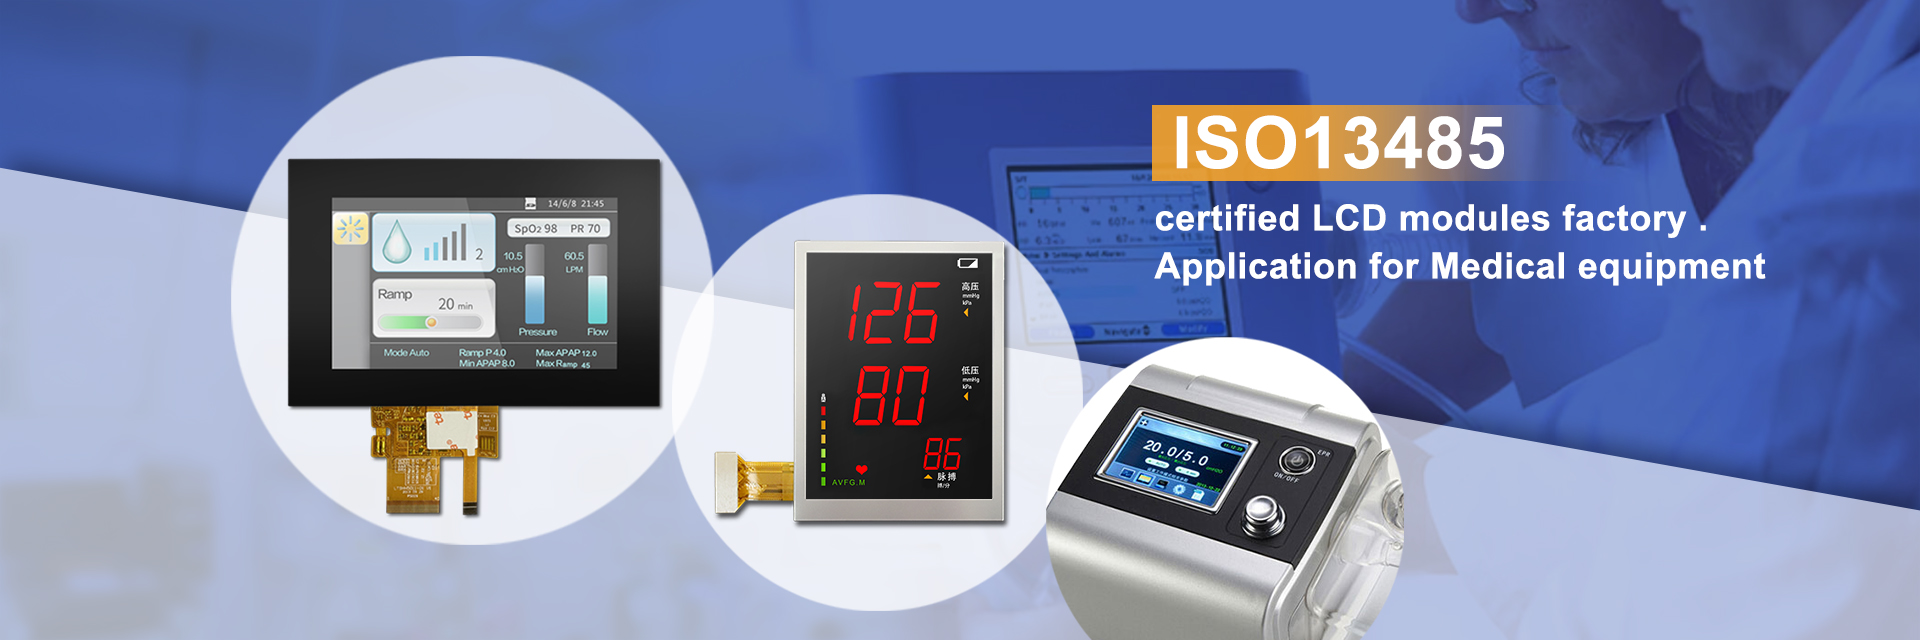 ISO13485 certified LCD moduldes display factory